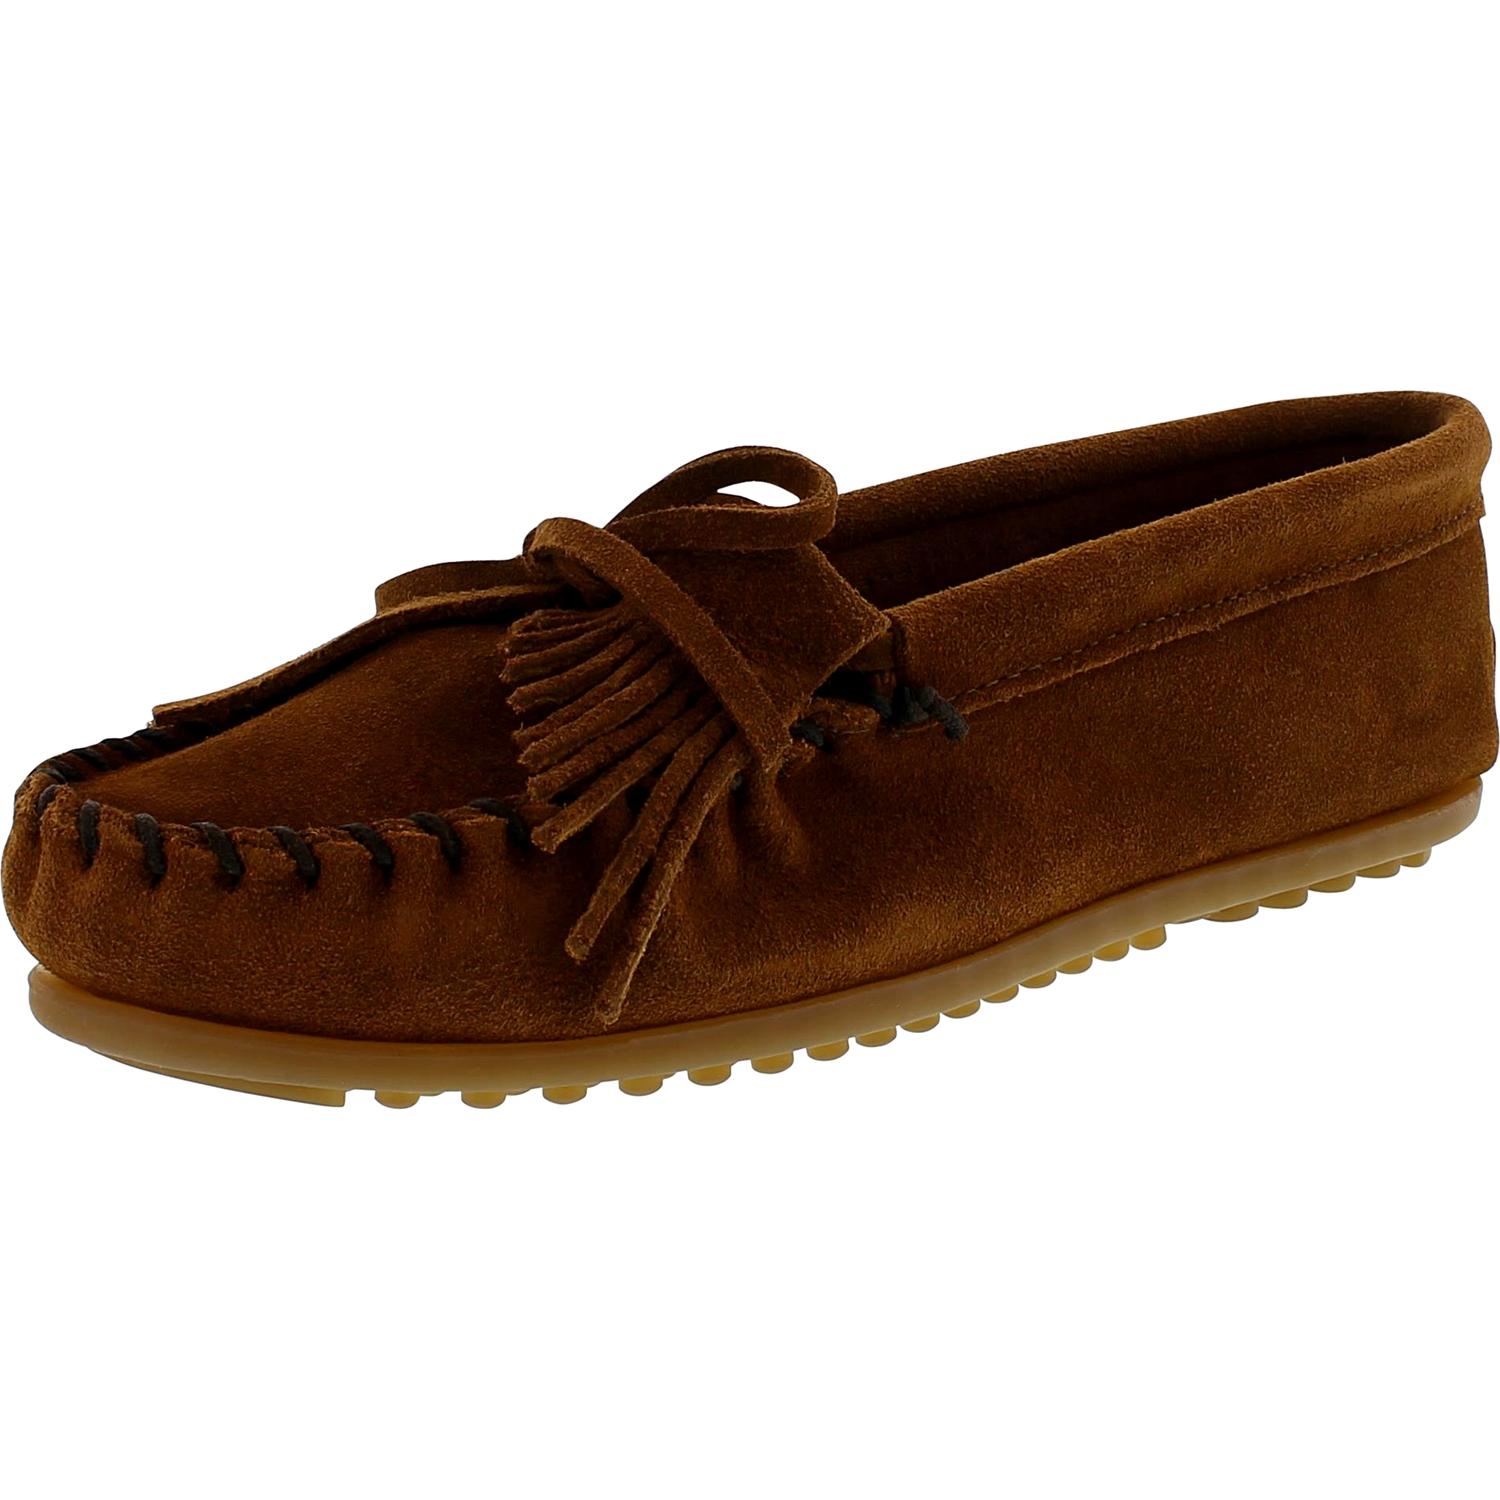 Minnetonka Women's Kilty Suede Moc Hardsole Ankle-High Suede Loafer by Minnetonka